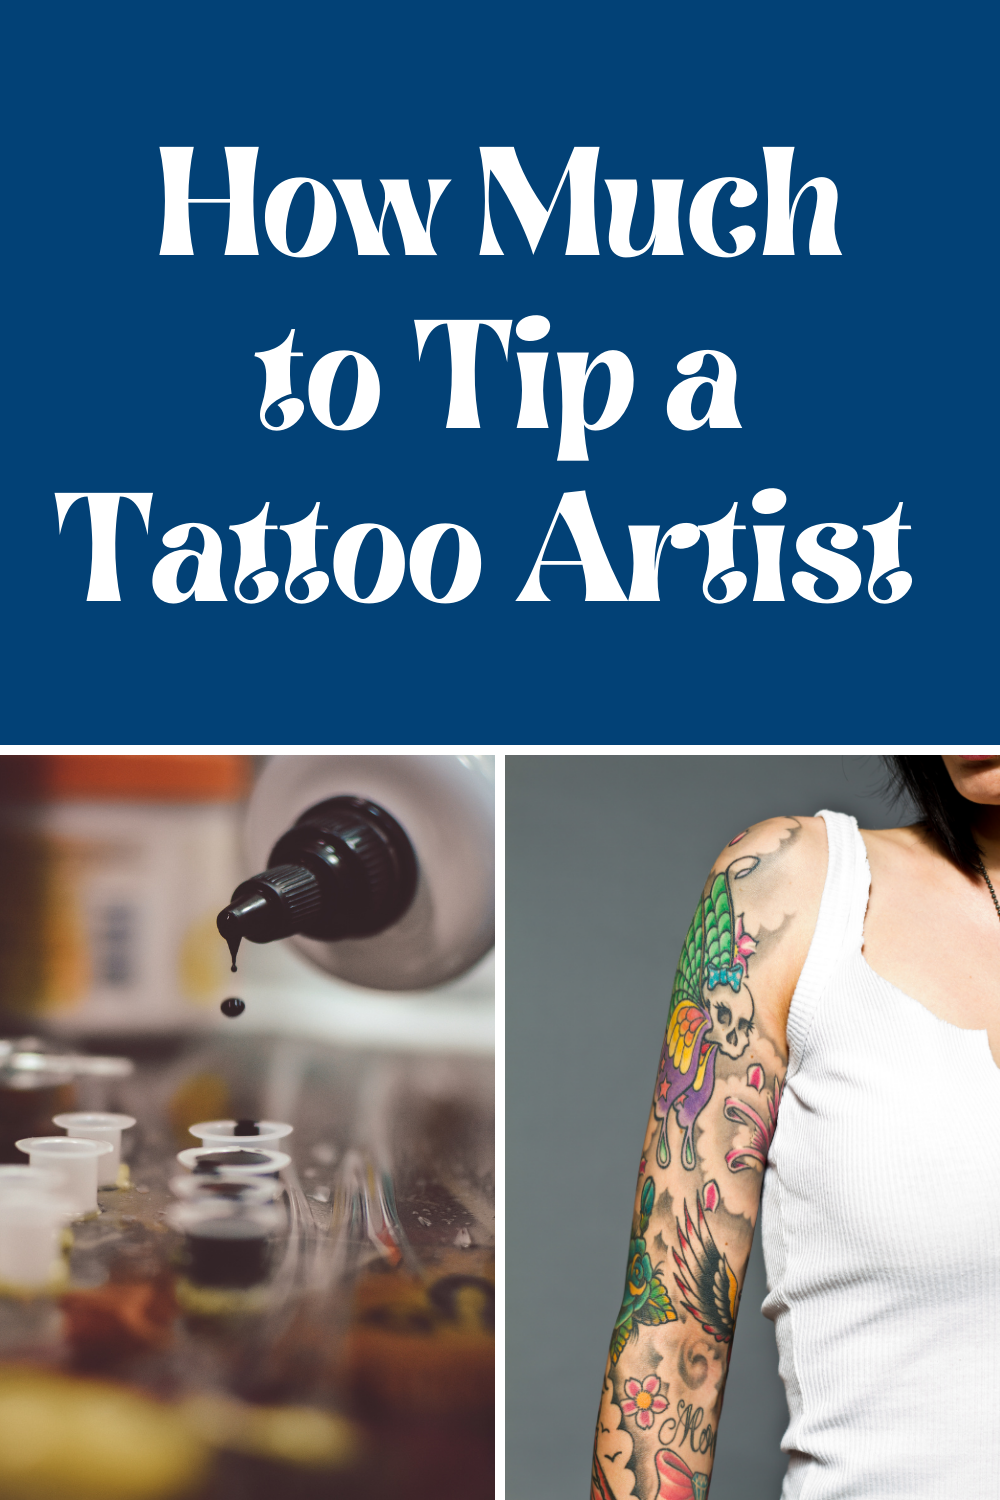 How Much to Tip Tattoo Artist